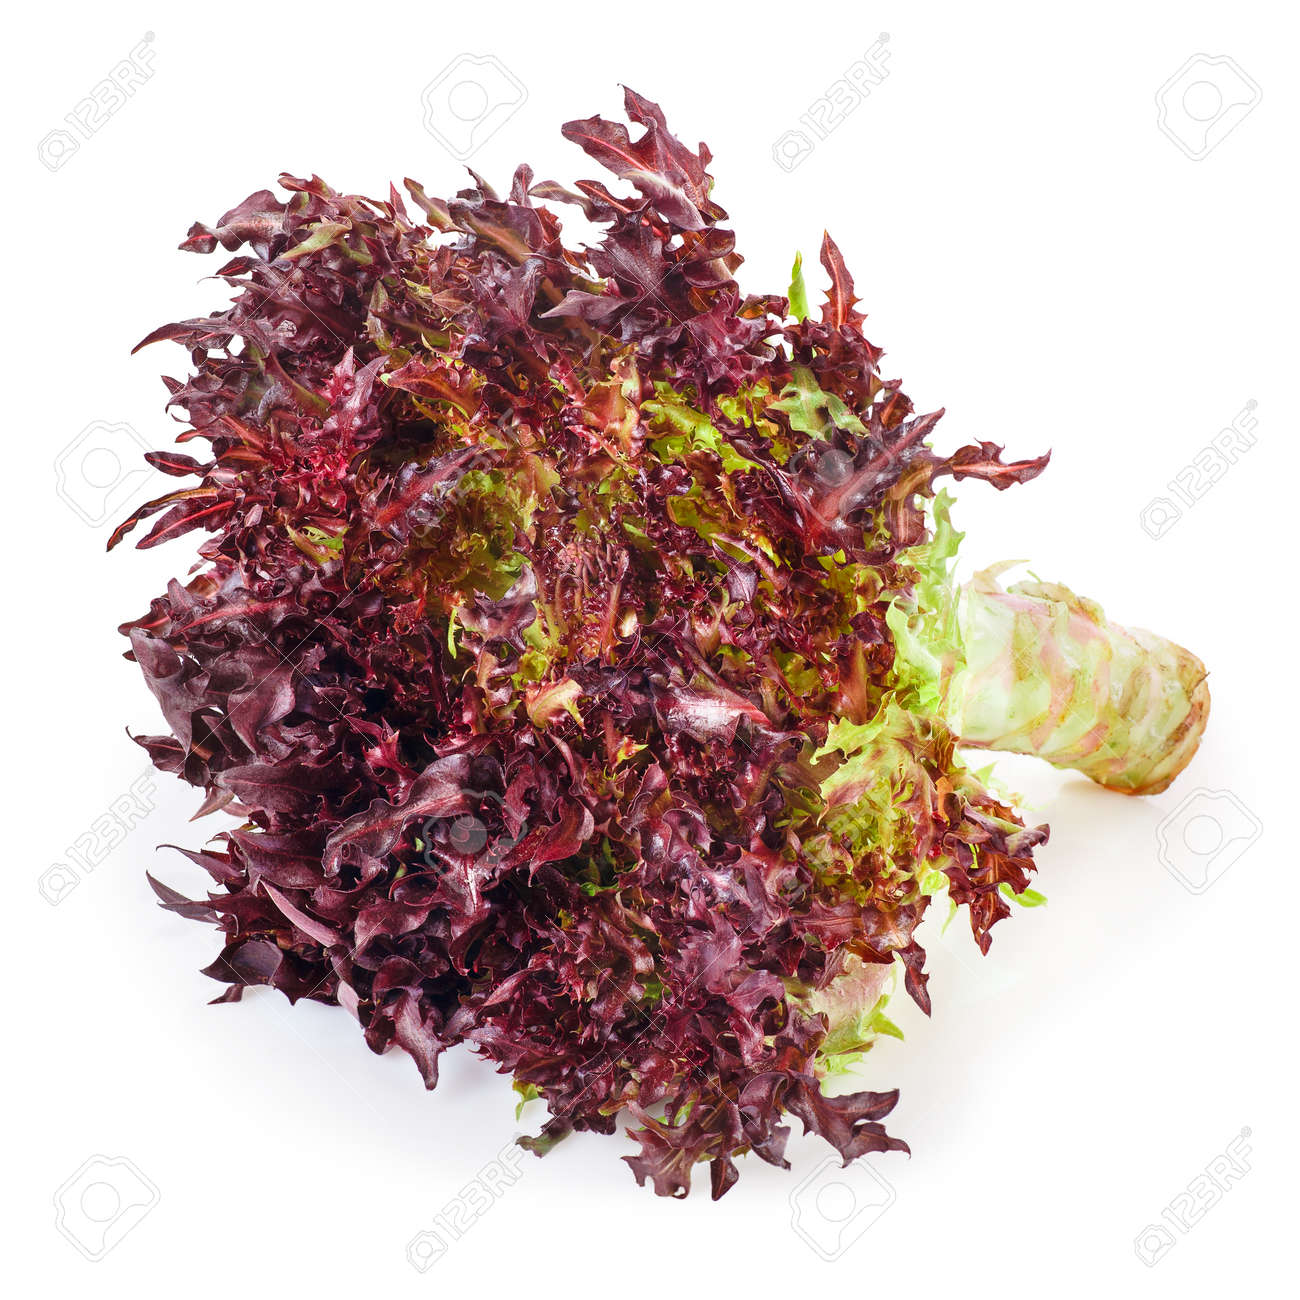 Red Frisee Lettuce Stock Photo Picture And Royalty Free Image Image 83601998,Sacagawea Coin 2000 P Sacagawea Dollar Error